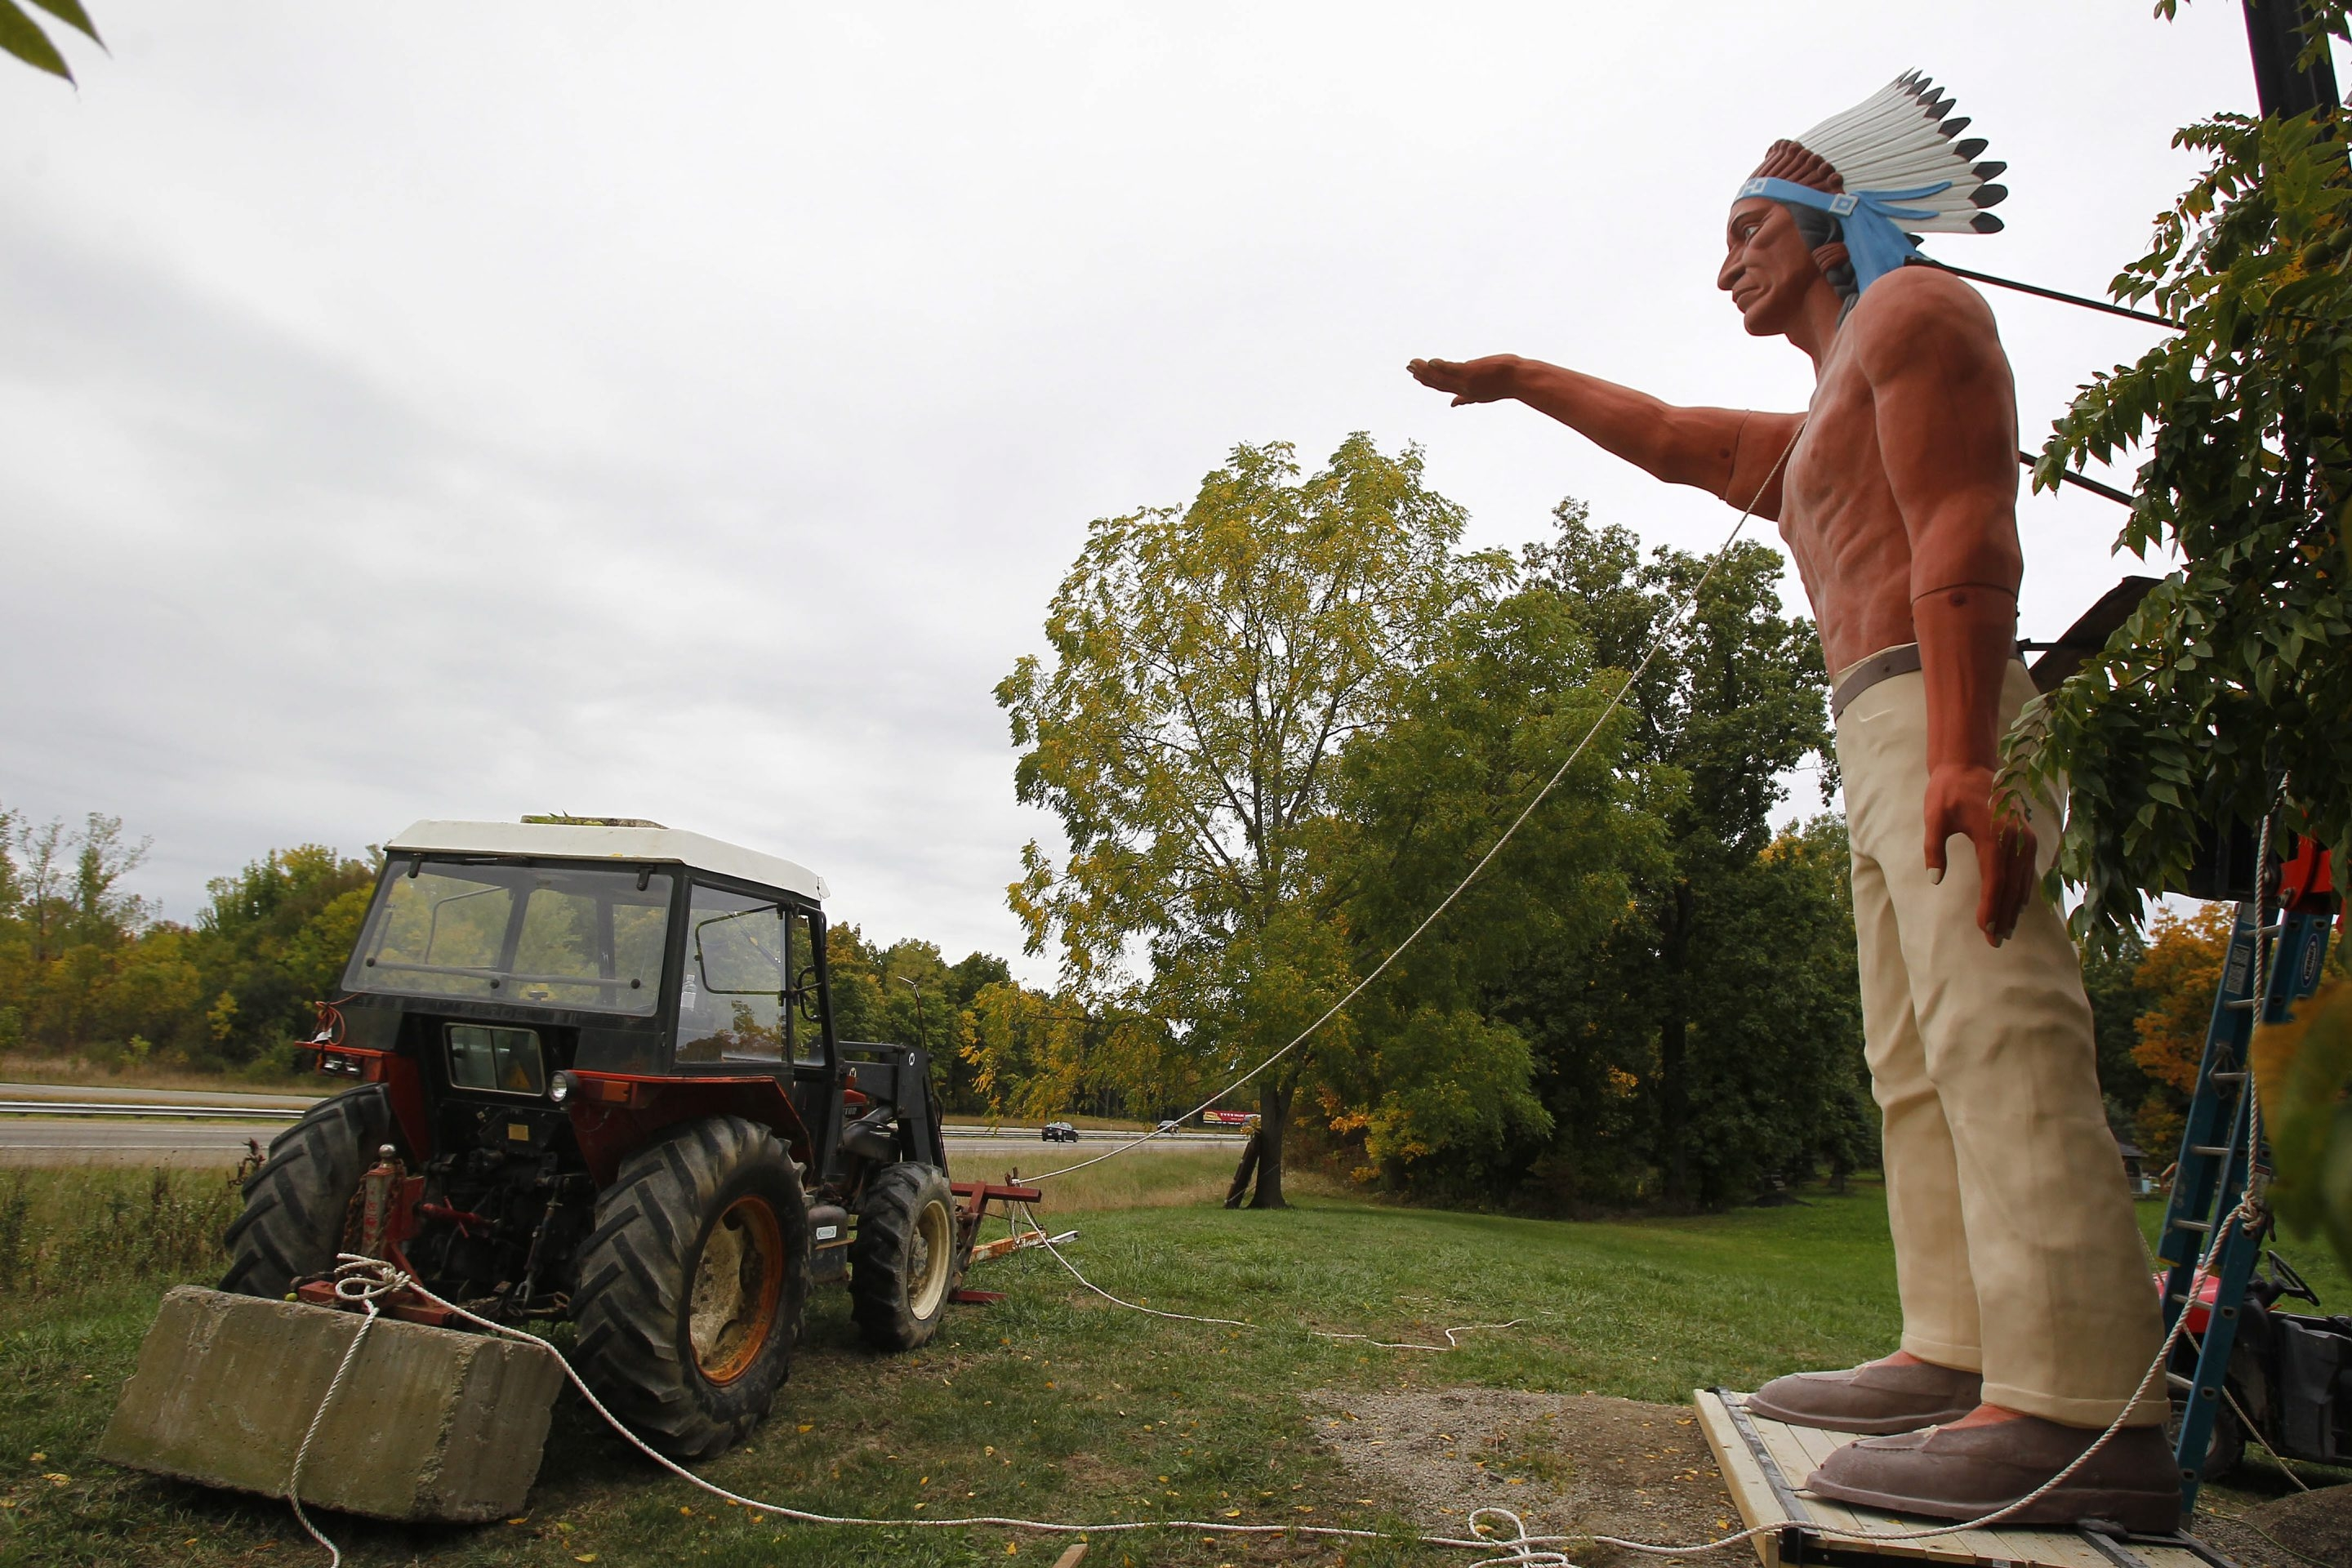 Mark Mulville/Buffalo News    The 'Big Indian' is returned to his perch overlooking the Thruway in Irving. The 28-foot-tall statue had been taken down after being badly damaged by vandals in June.